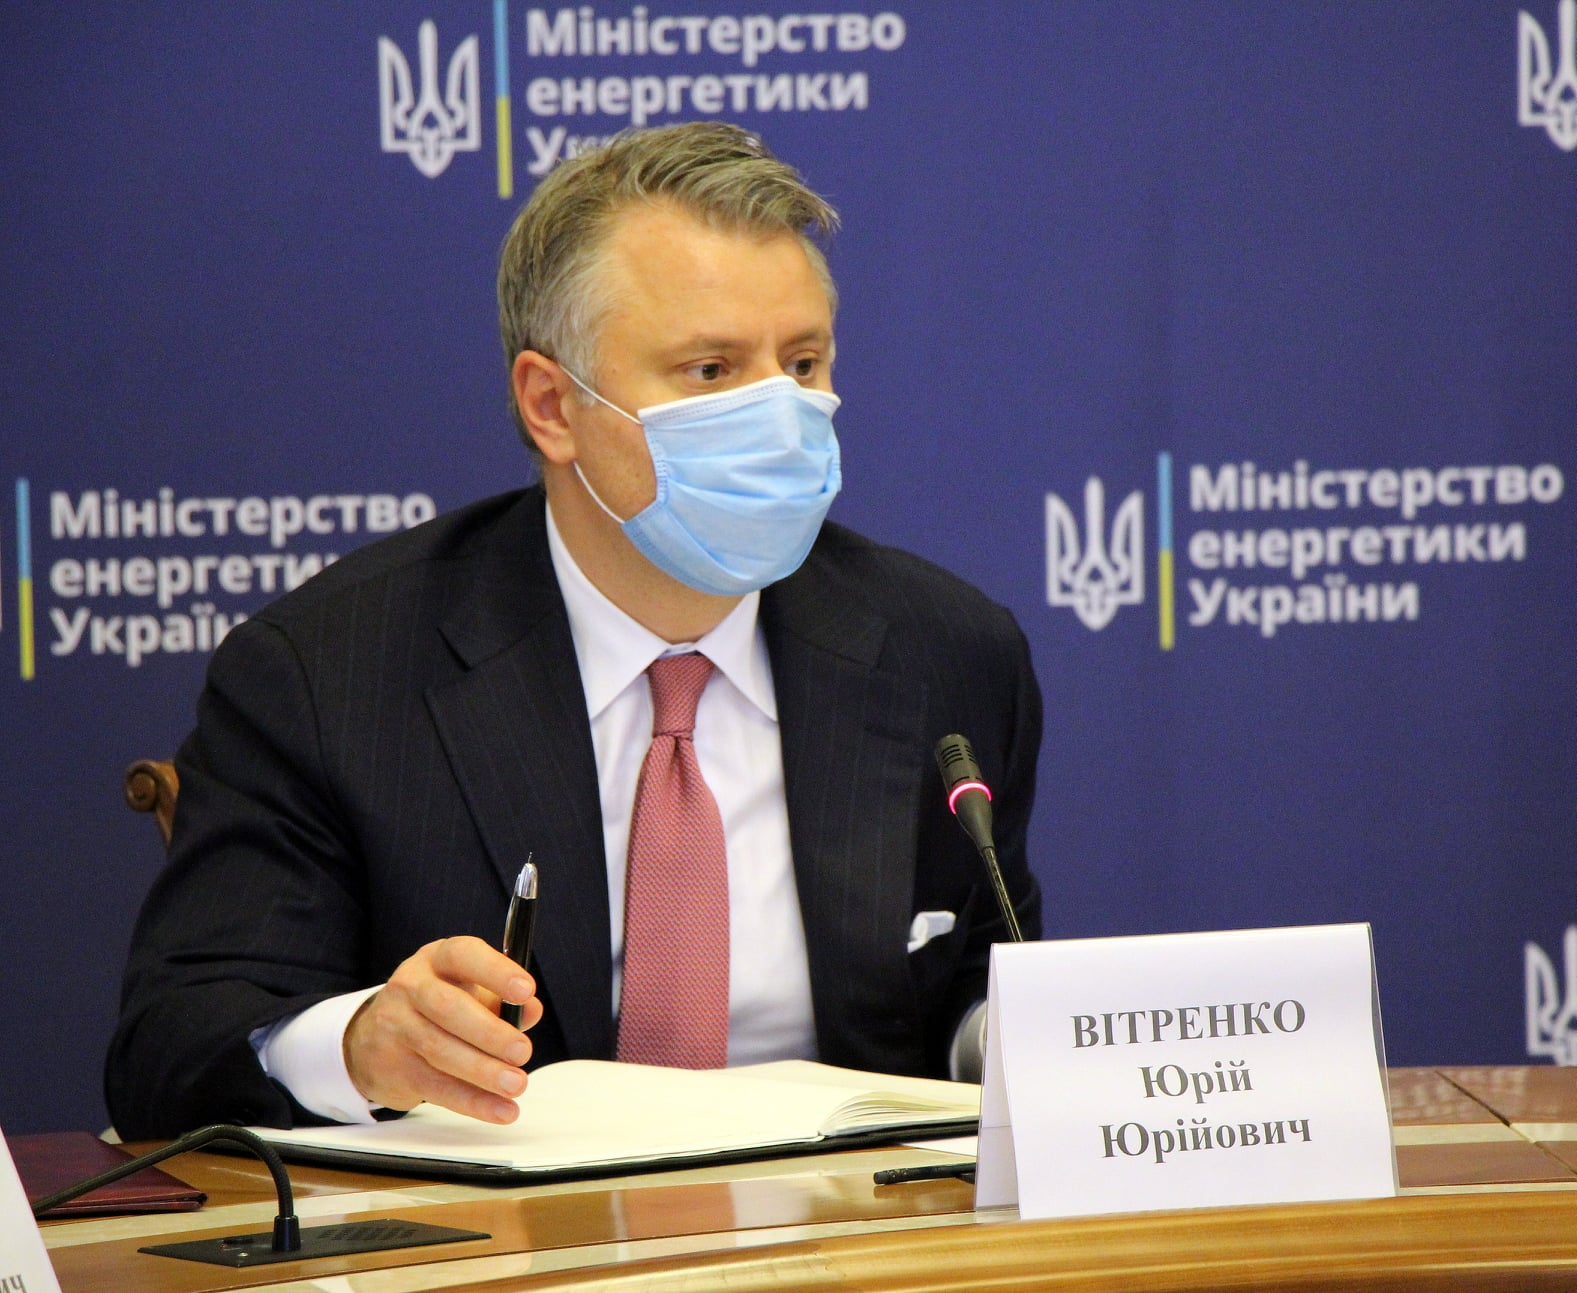 Vitrenko said the Ministry of Energy had a different solution concerning the gas price